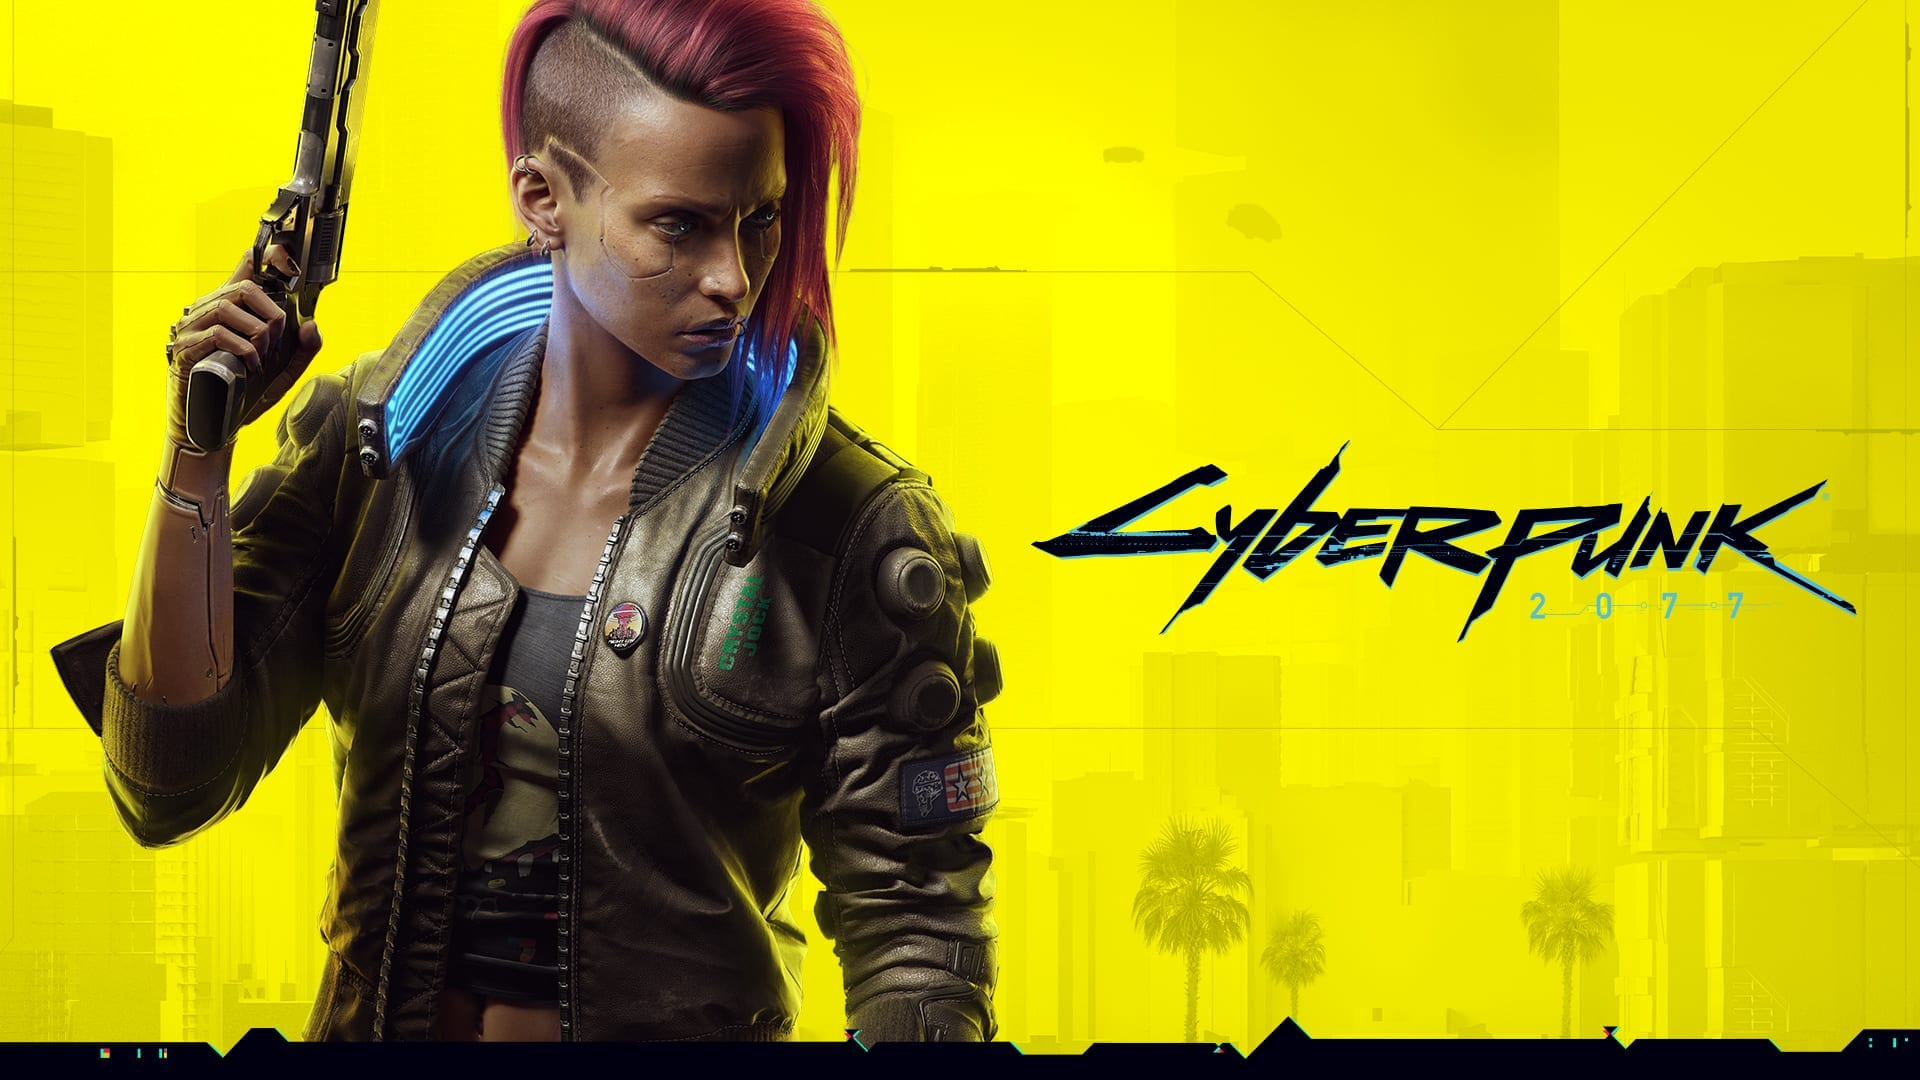 Cyberpunk 2077 Has Been Delayed Yet Again